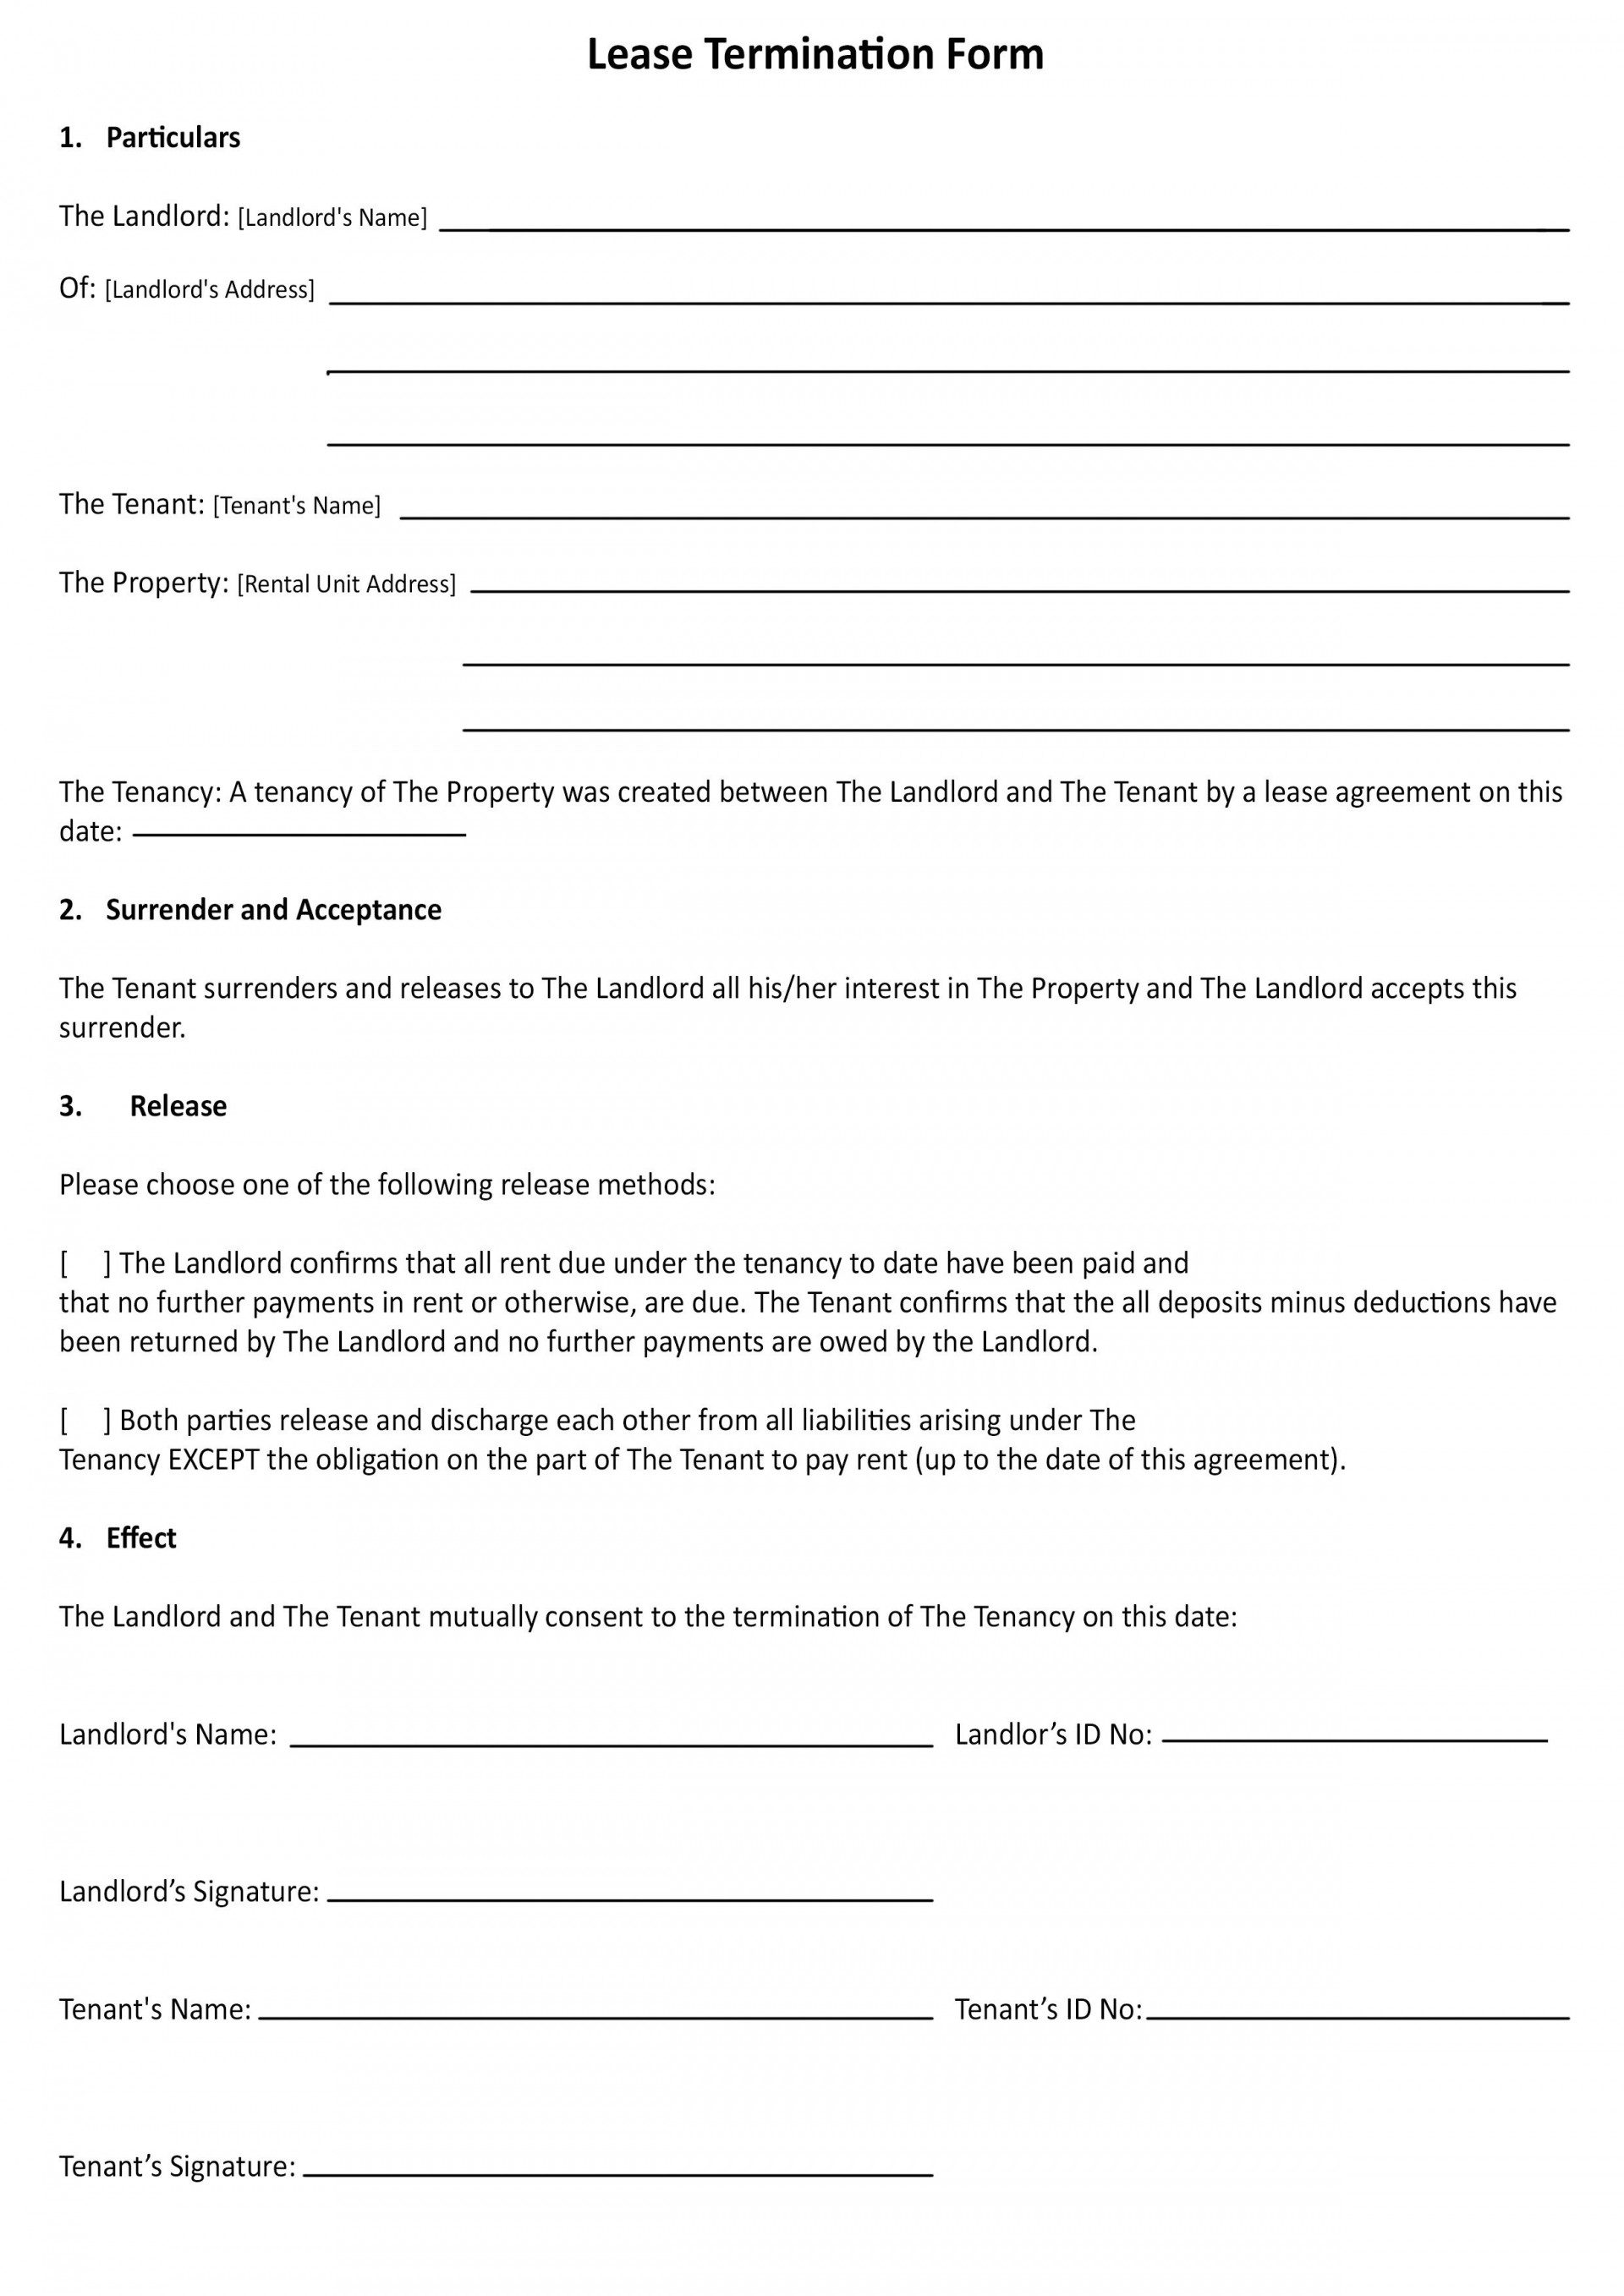 009 Magnificent Rental Agreement Template Word South Africa Picture  Room Doc Application Form1920